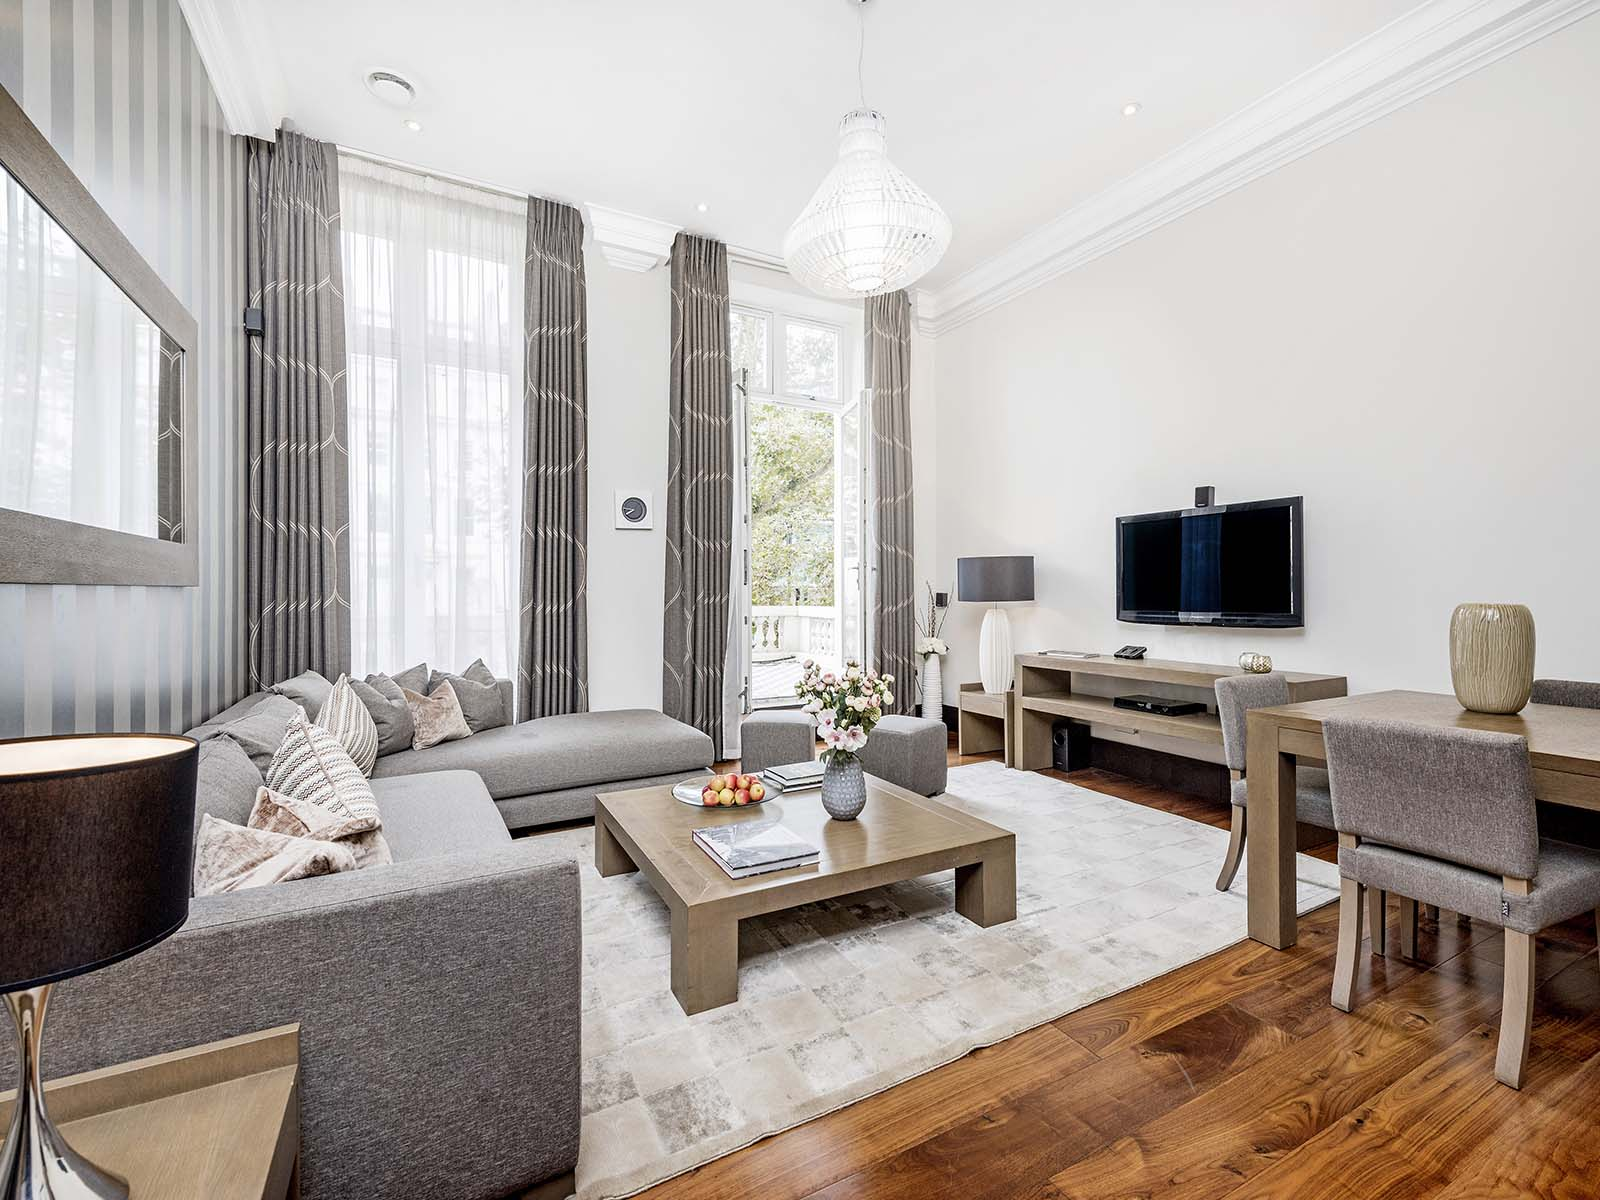 Living room at 130 Queens Gate Apartments, South Kensington, London - Citybase Apartments